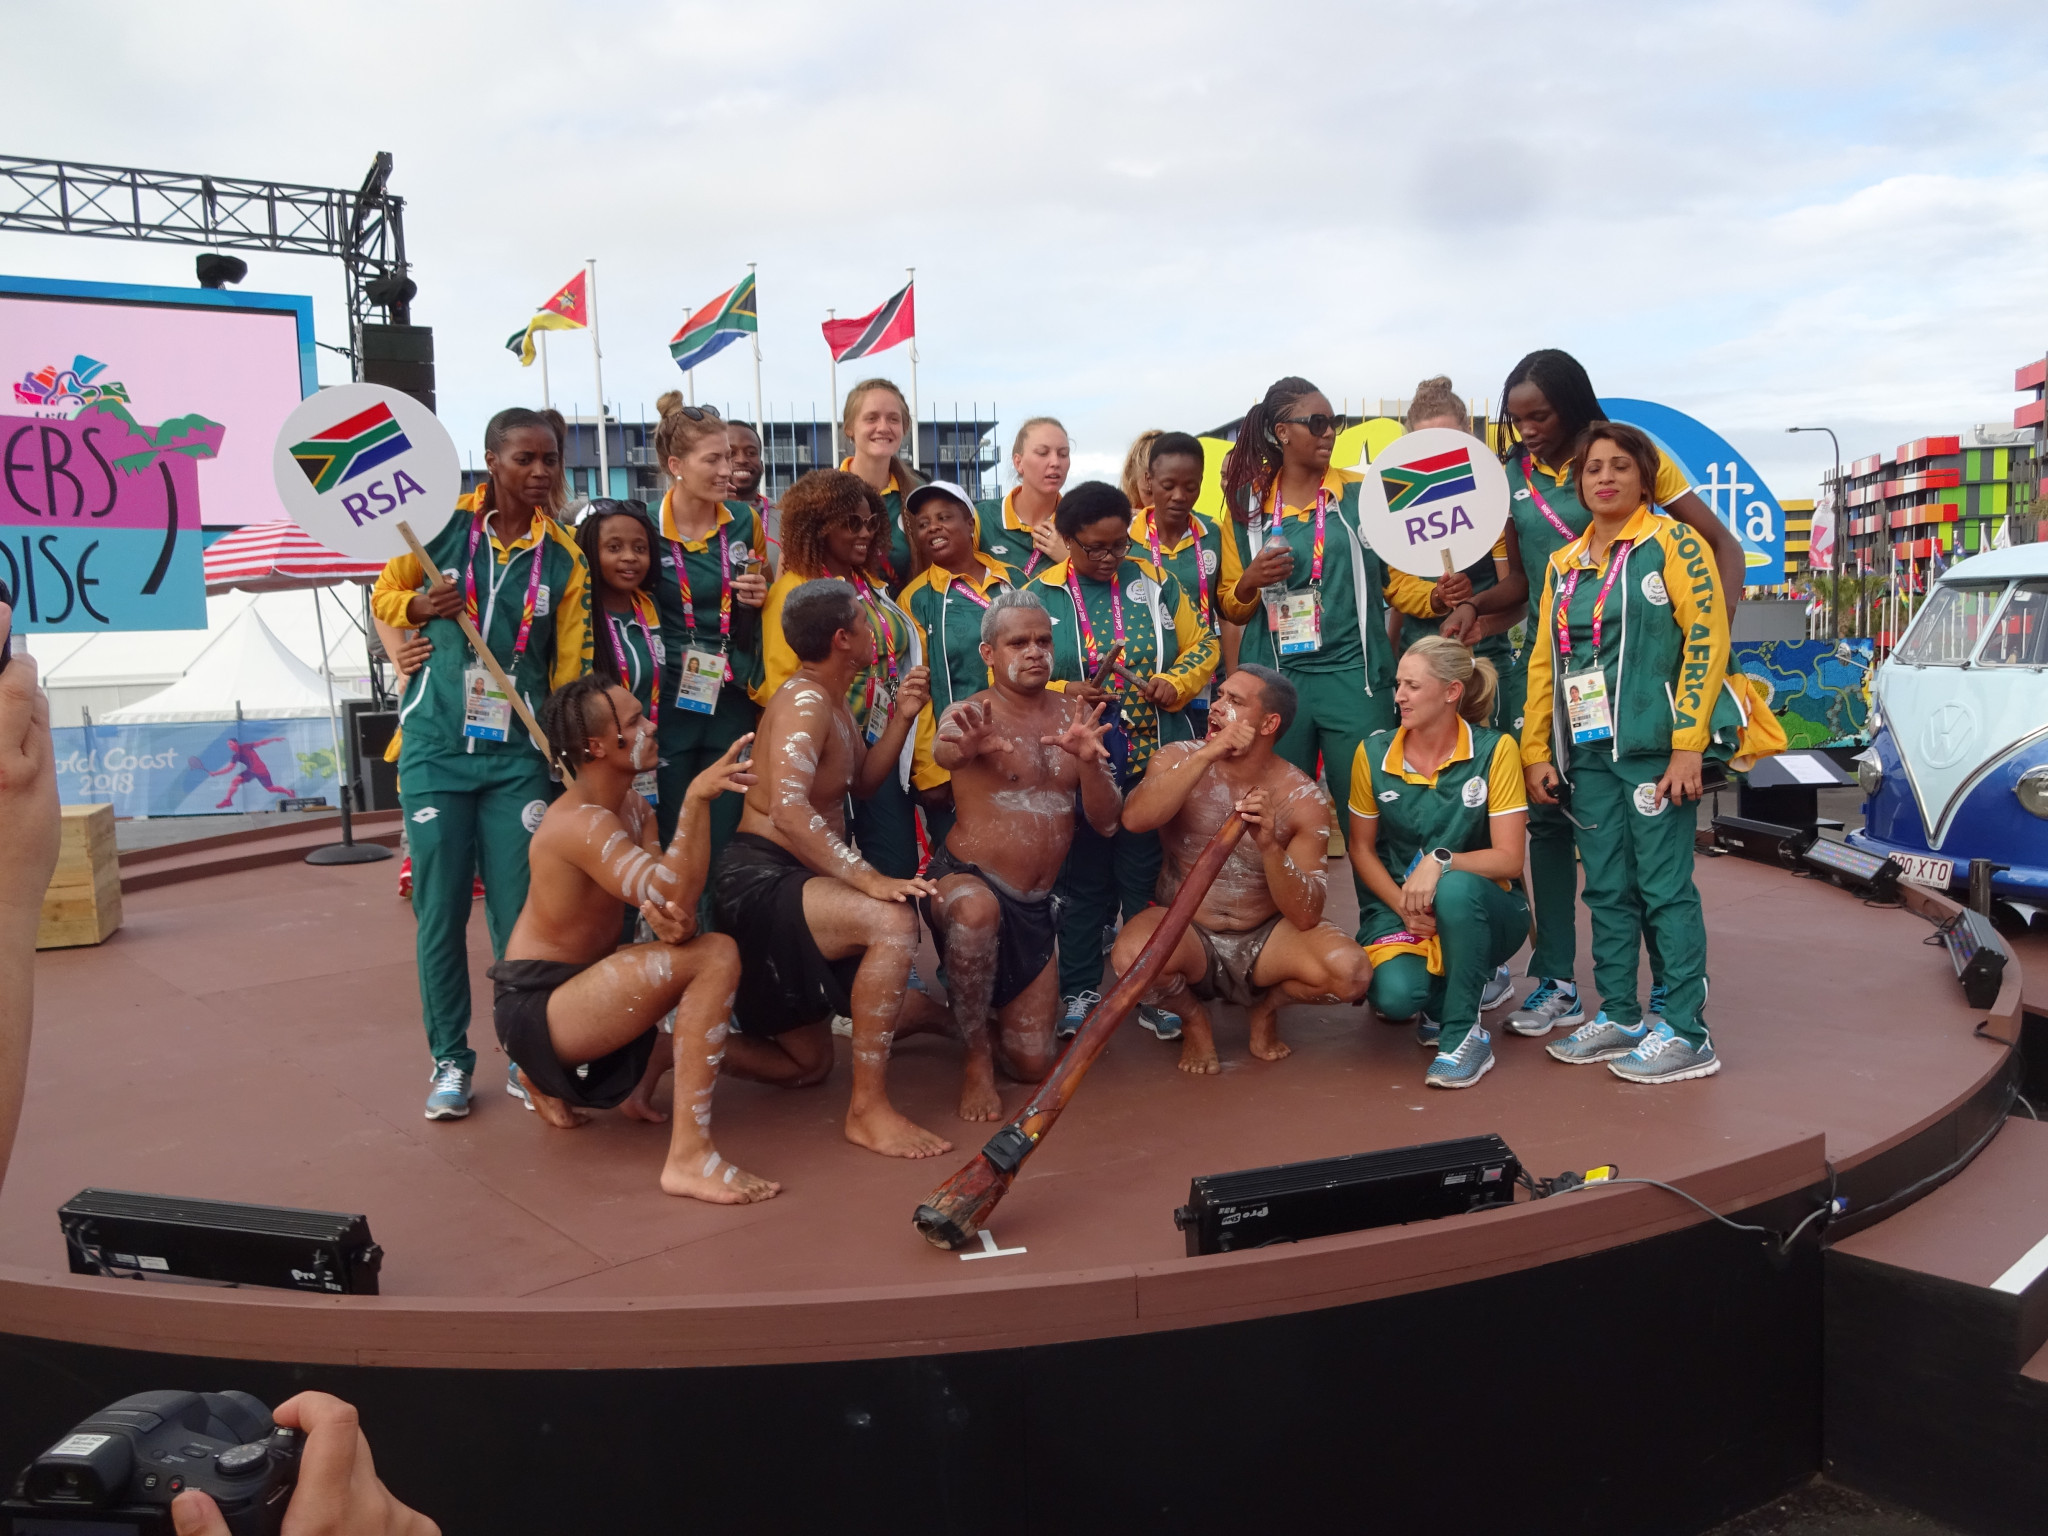 Welcome ceremonies are being held for teams at Gold Coast 2018 ©ITG